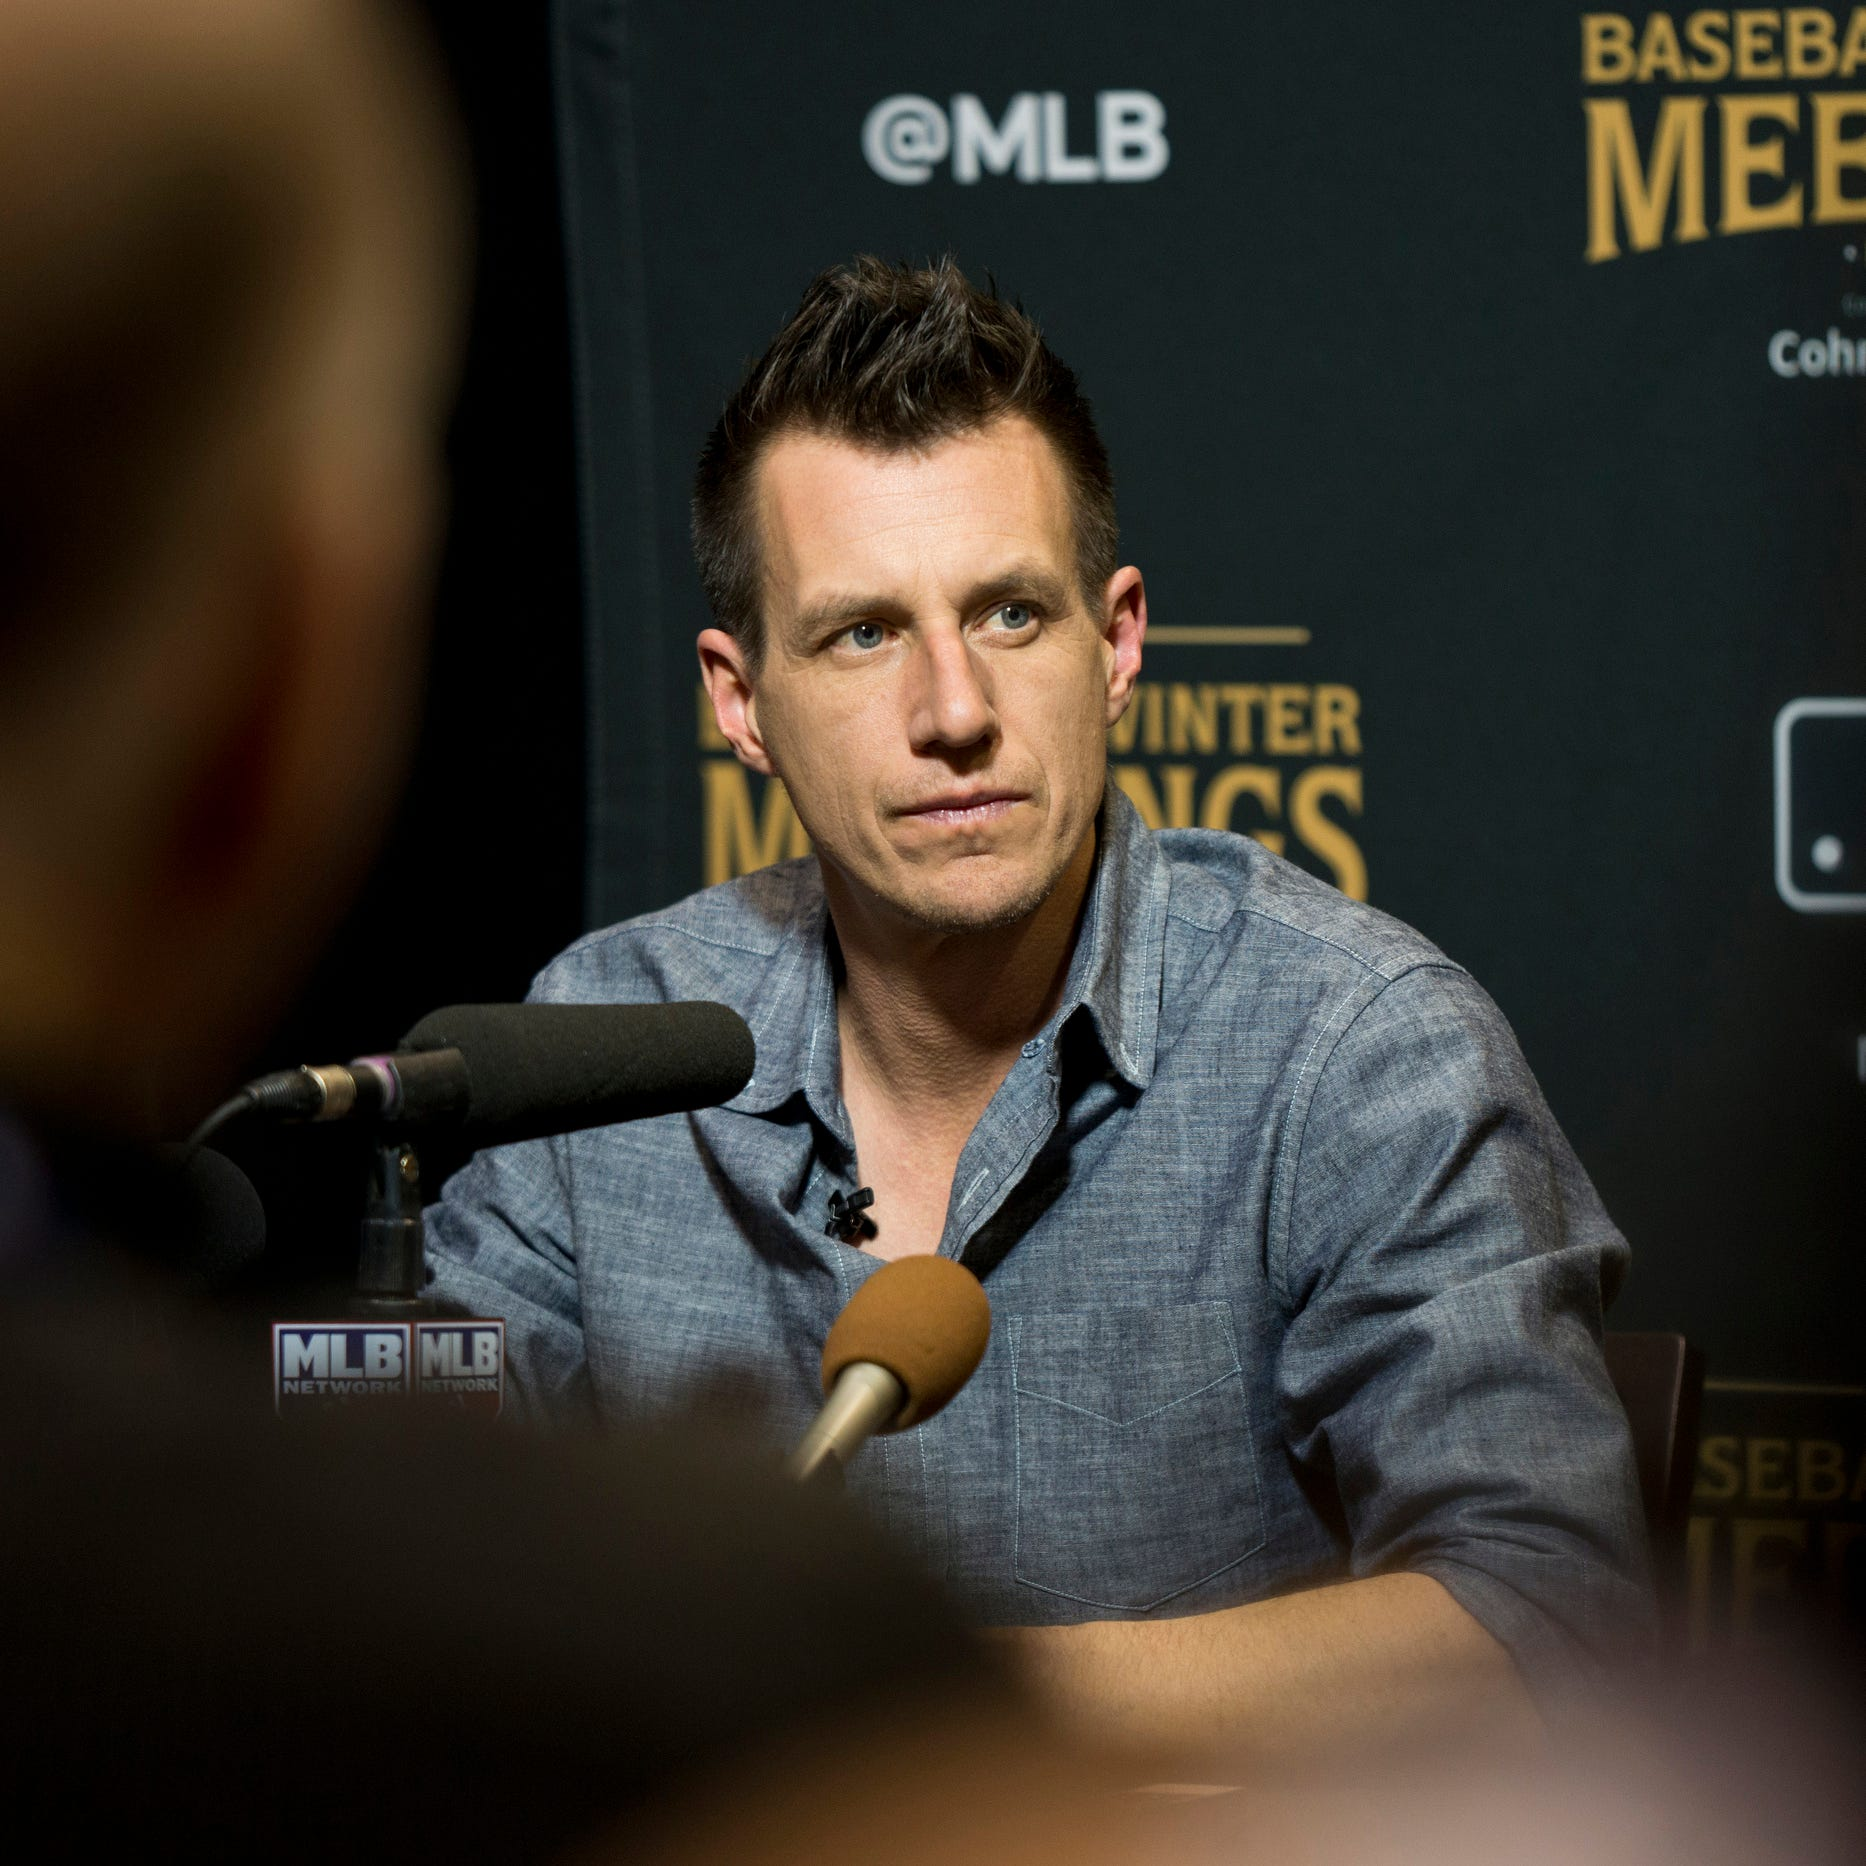 Q&A: Brewers manager Craig Counsell 'excited' about chance of making another postseason run